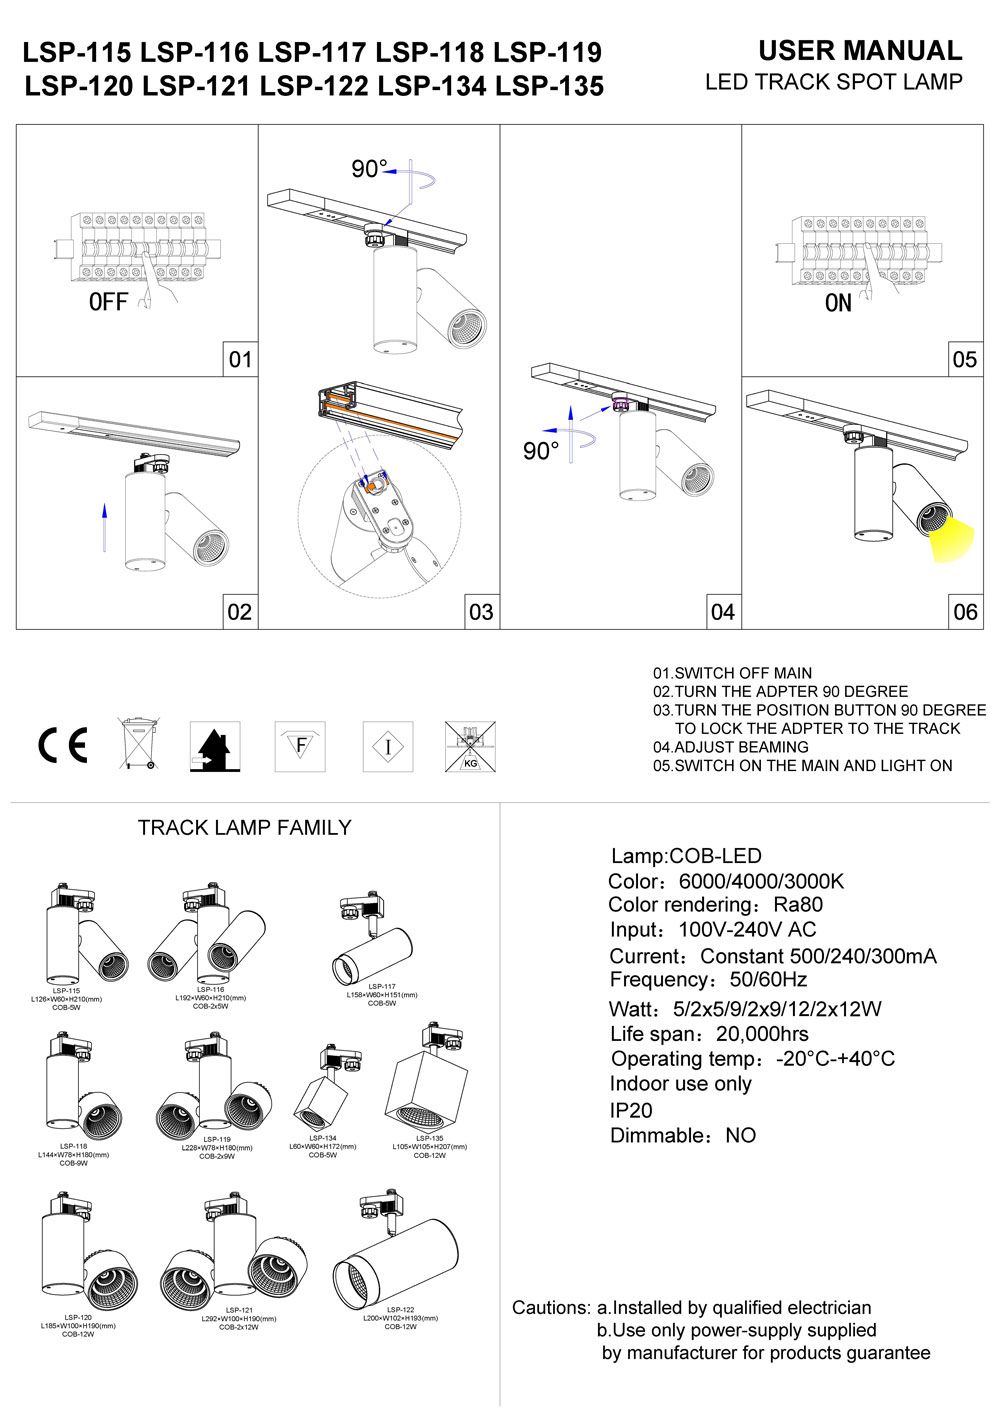 LSP-115-LSP-116-LSP-117 LED track light installation guide